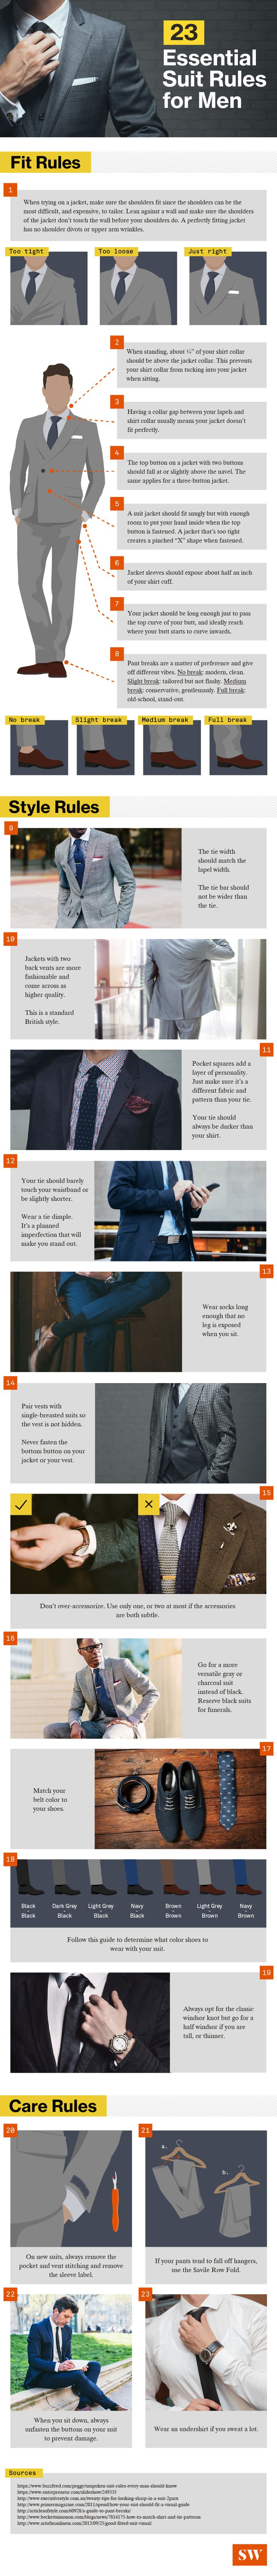 Suits can look deceivingly similar on the surface. Typically, there's a jacket, a pair of pants, a shirt, and a tie or bowtie. Suits can seem so basic that